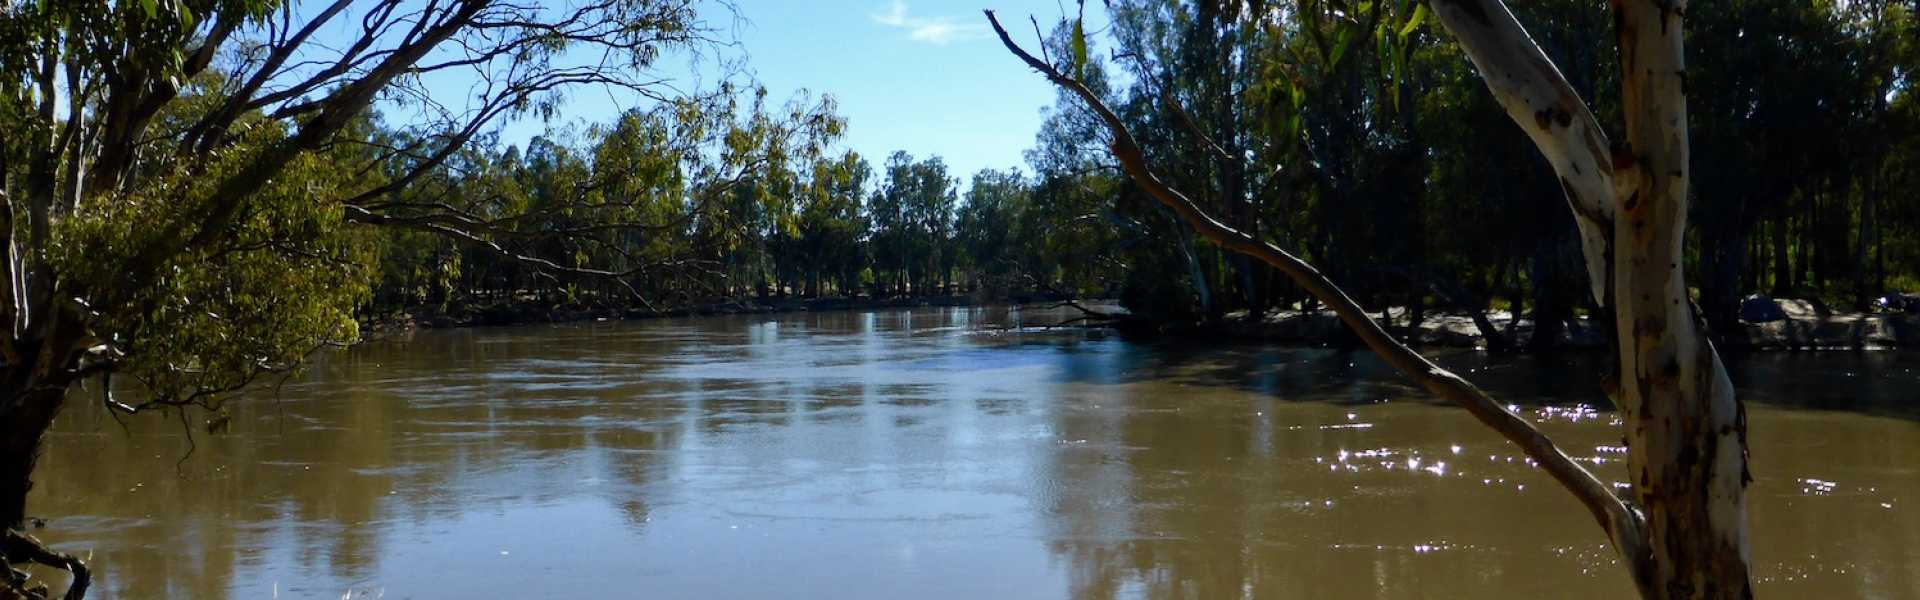 Kui Parks, Cocobend Caravan and Camping Grounds, Moama, River